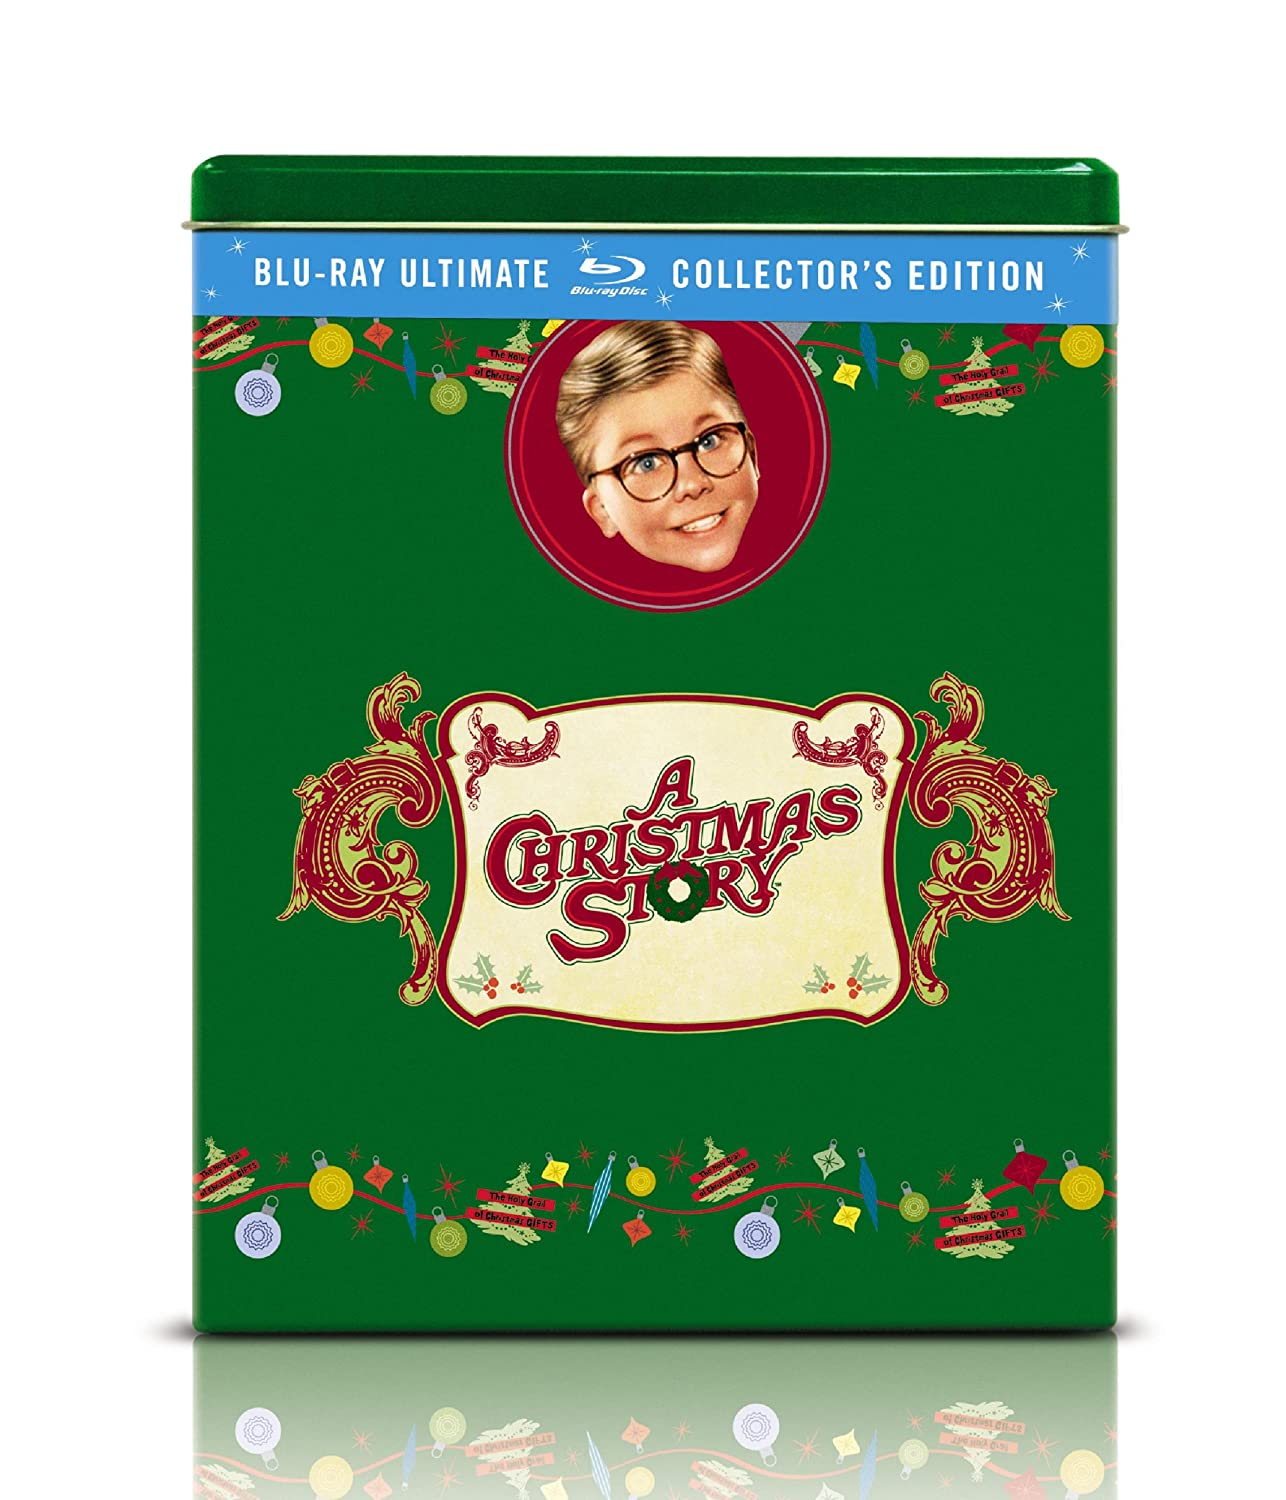 Amazon.com: A Christmas Story (Ultimate Collector's Edition) [Blu ...